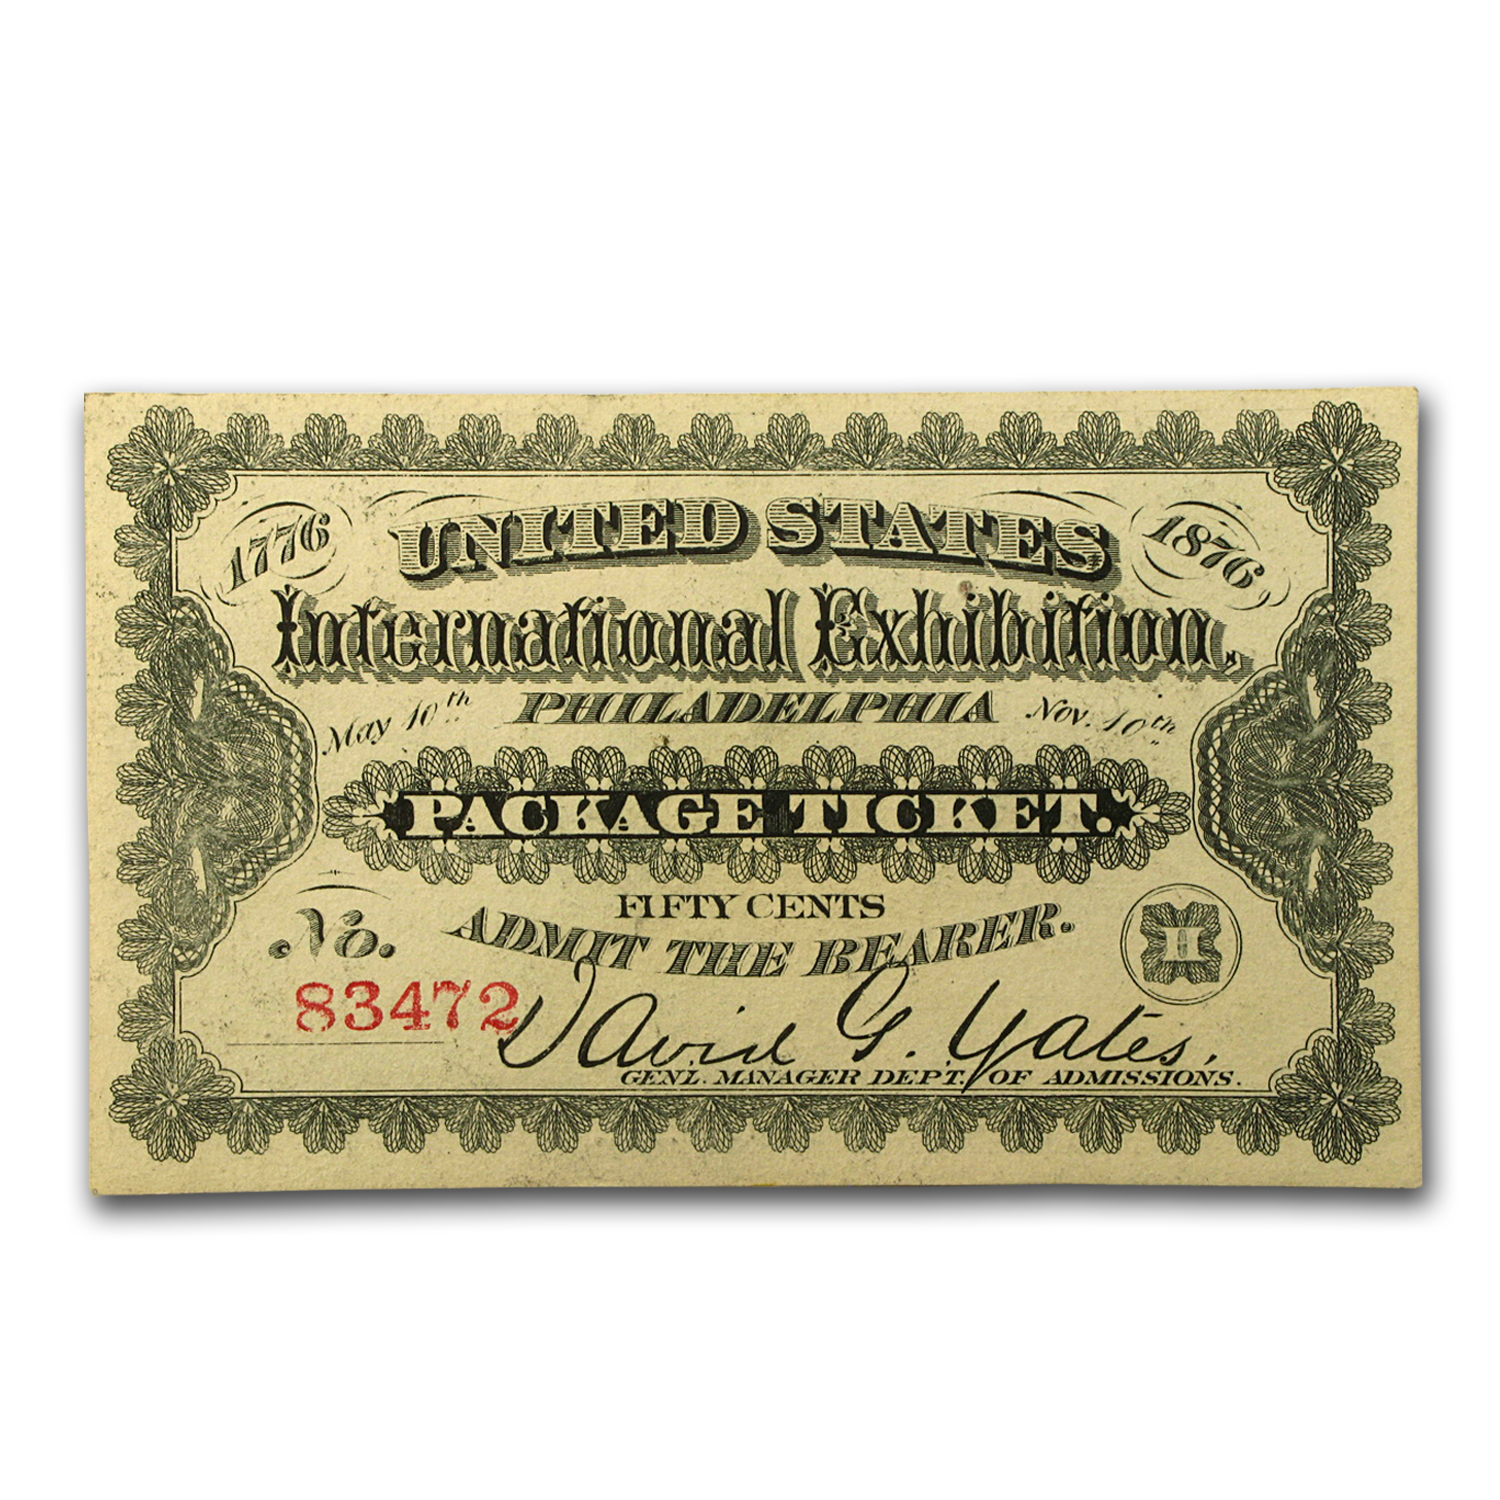 1876 Centennial Exposition Admission Ticket